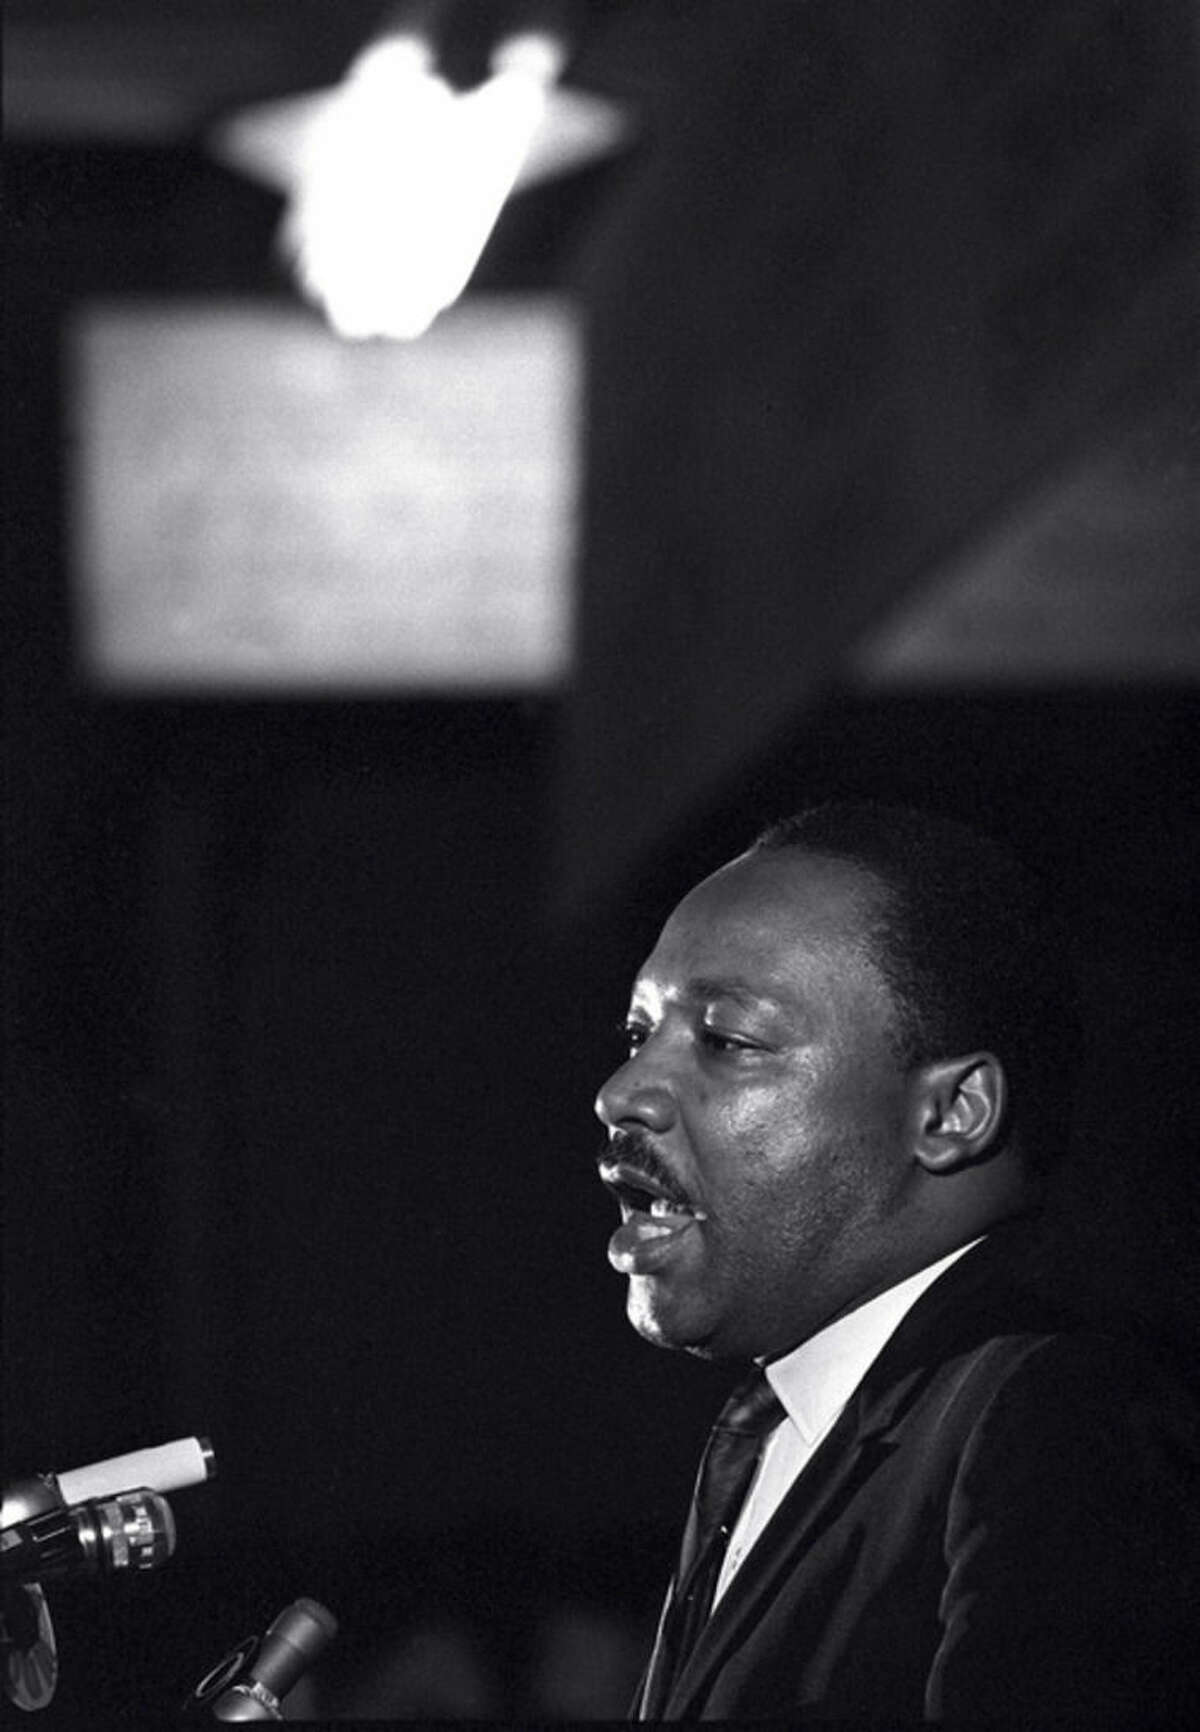 """ADVANCE FOR USE SUNDAY, JAN. 17, 2015 AND THEREAFTER - FILE - In this April 3, 1968 file photo, Dr. Martin Luther King Jr. makes his last public appearance at the Mason Temple in Memphis, Tenn. The following day King was assassinated on his motel balcony. In a new memoir, """"My Life with the Kings: A Reporter's Recollections of Martin, Coretta and the Civil Rights Movement,"""" retired Associated Press reporter Kathryn Johnson describes many civil rights flashpoints that she covered in the 1960s, and details her close relationship with the movement's leader, the Rev. Martin Luther King Jr., and his family. (AP Photo/Charles Kelly, File)"""